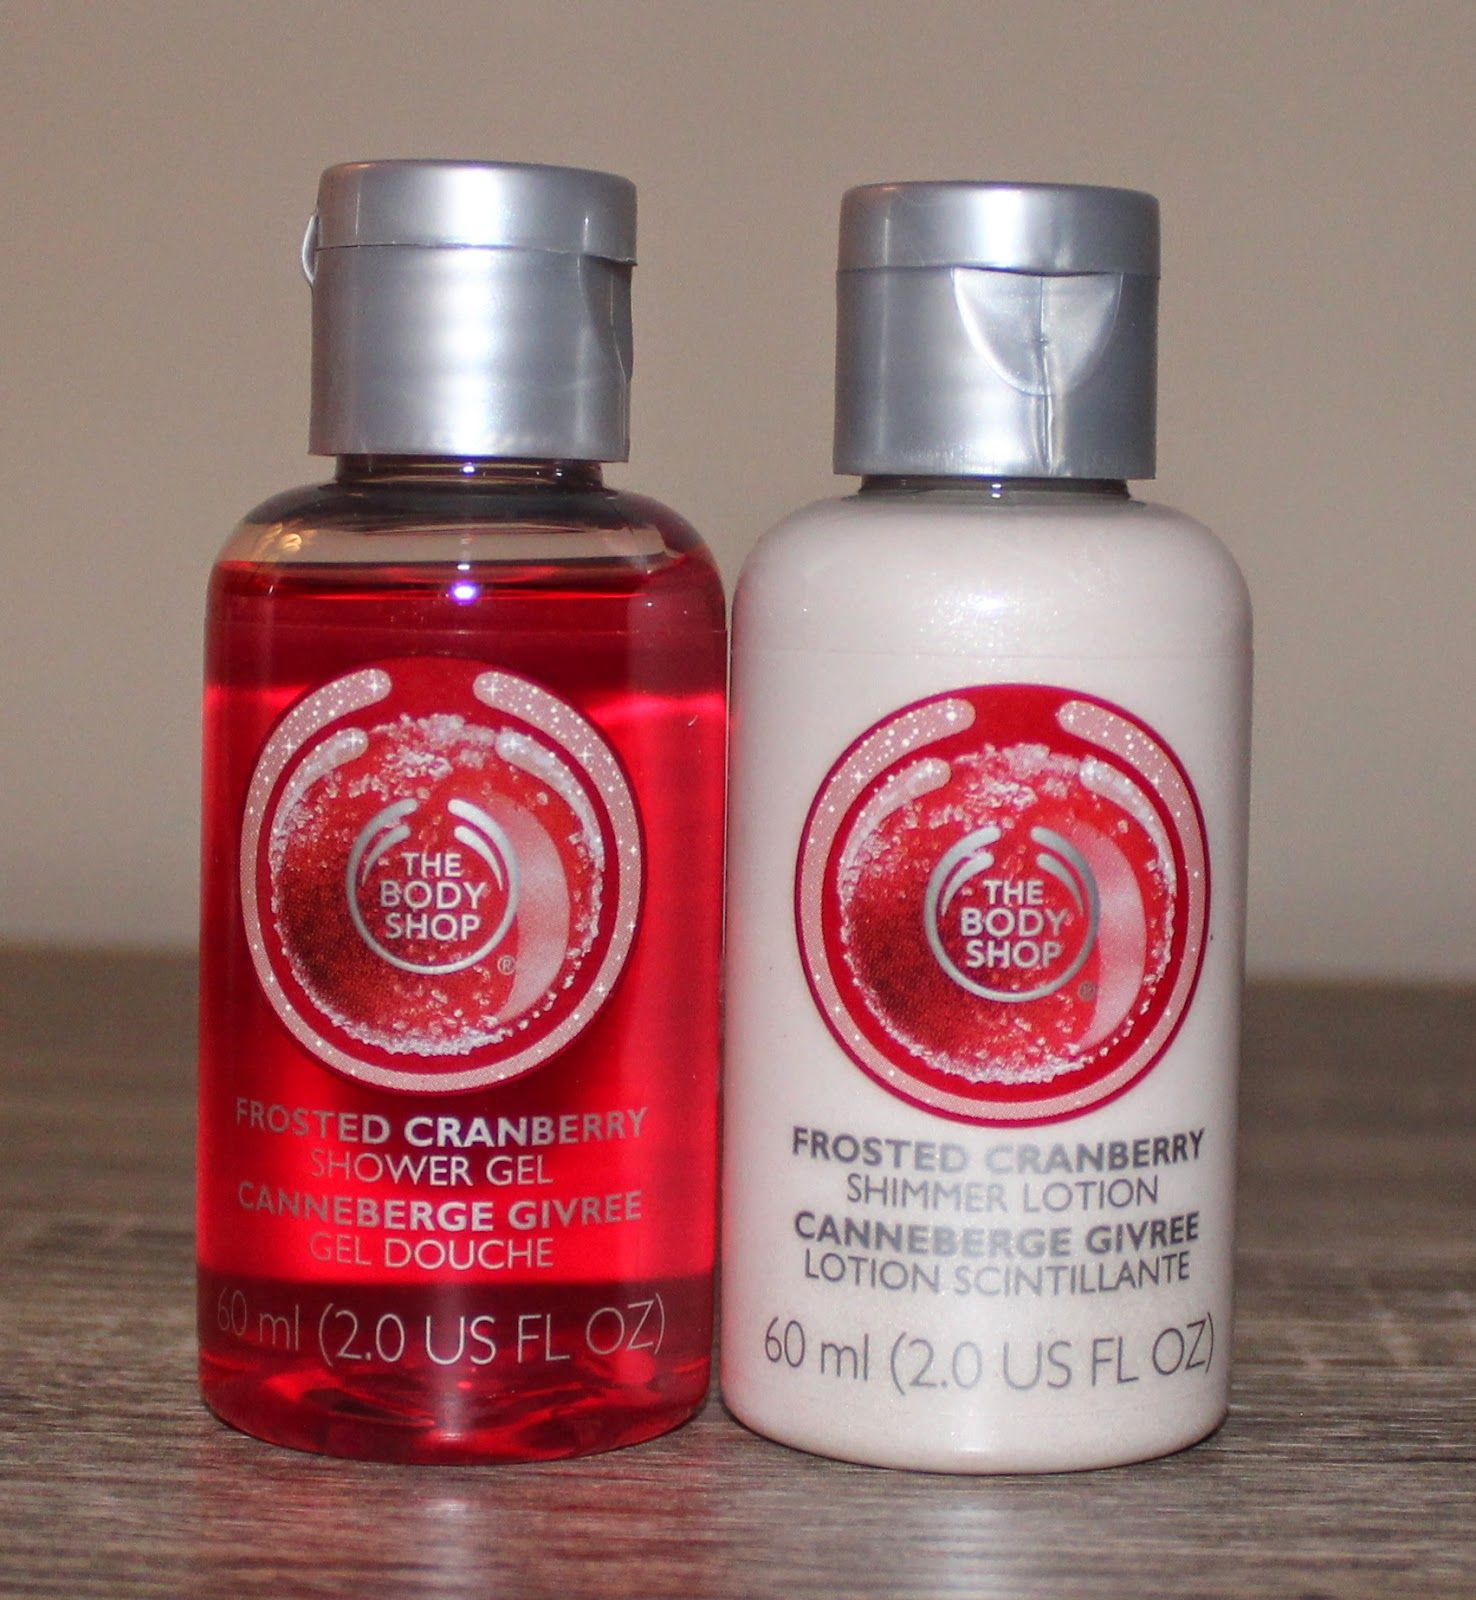 The Body Shop Frosted Cranberry Shower Gel & Shimmer Lotion ...